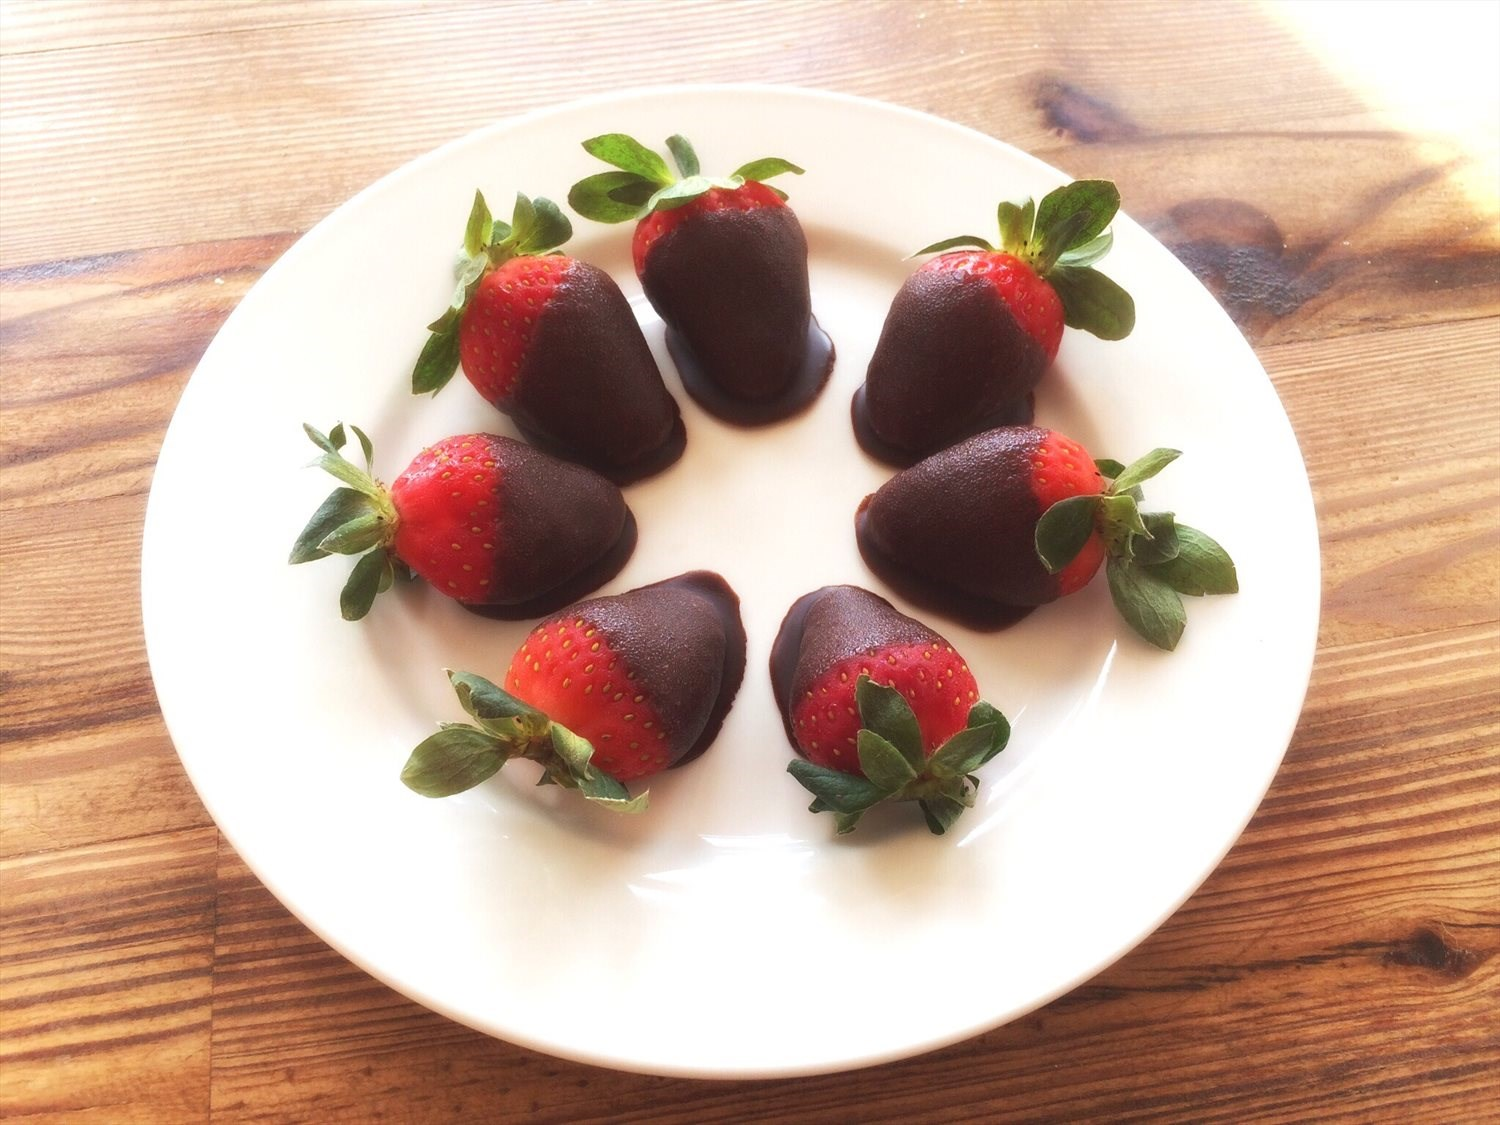 Homemade Chocolate Covered Strawberries